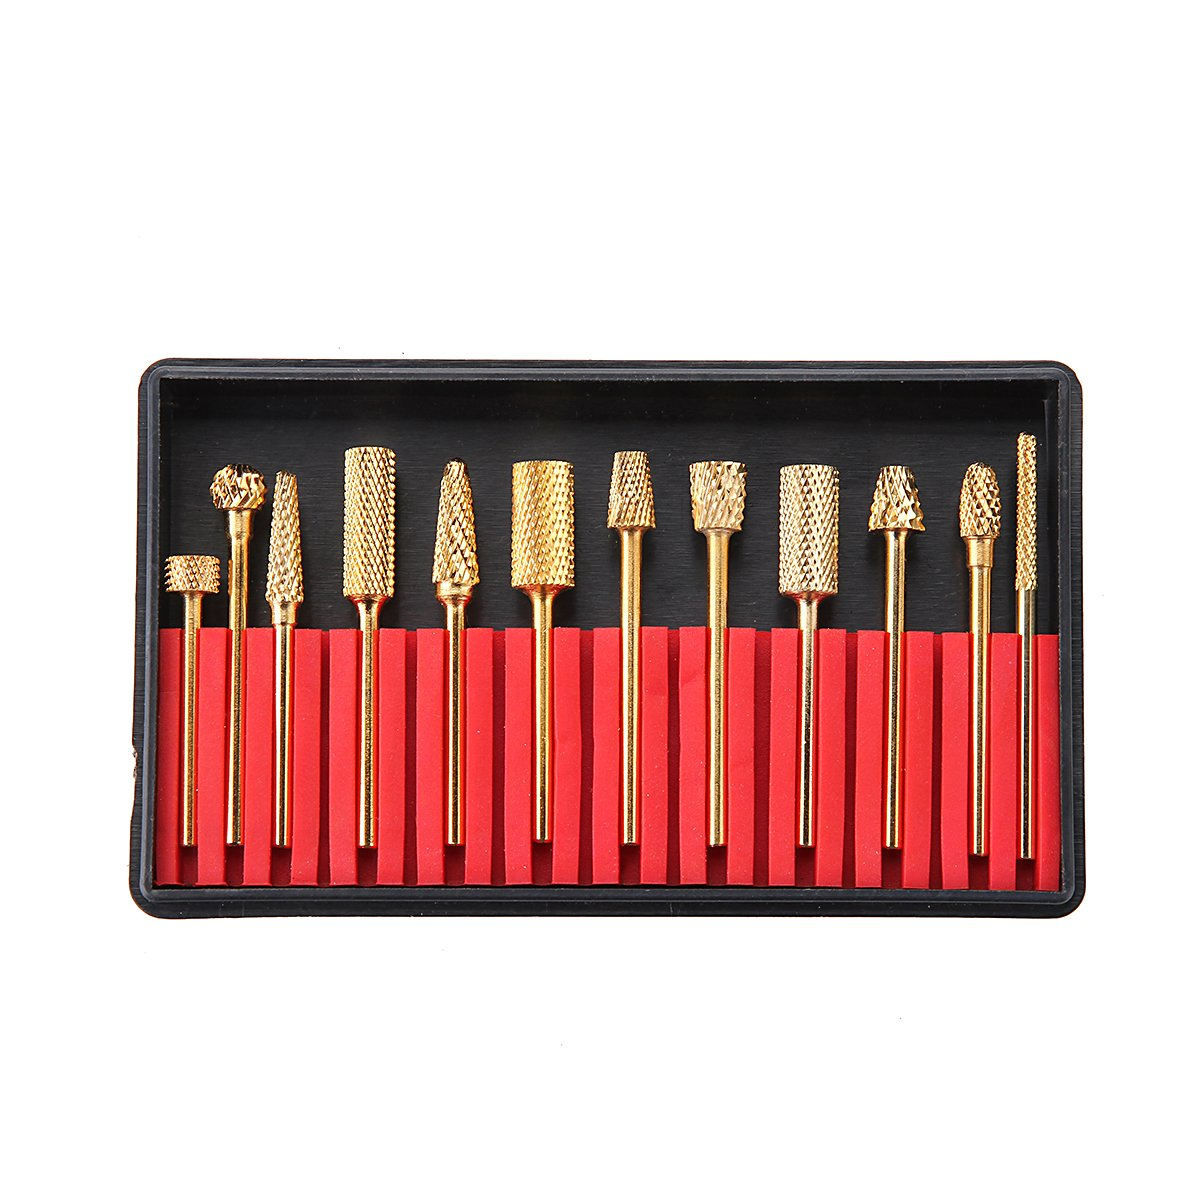 MAKARTT A-02 12Pcs Gold Carbide Nail Drill Bit Set Professional Bits Tools 3/32'' with Storage Case Holder